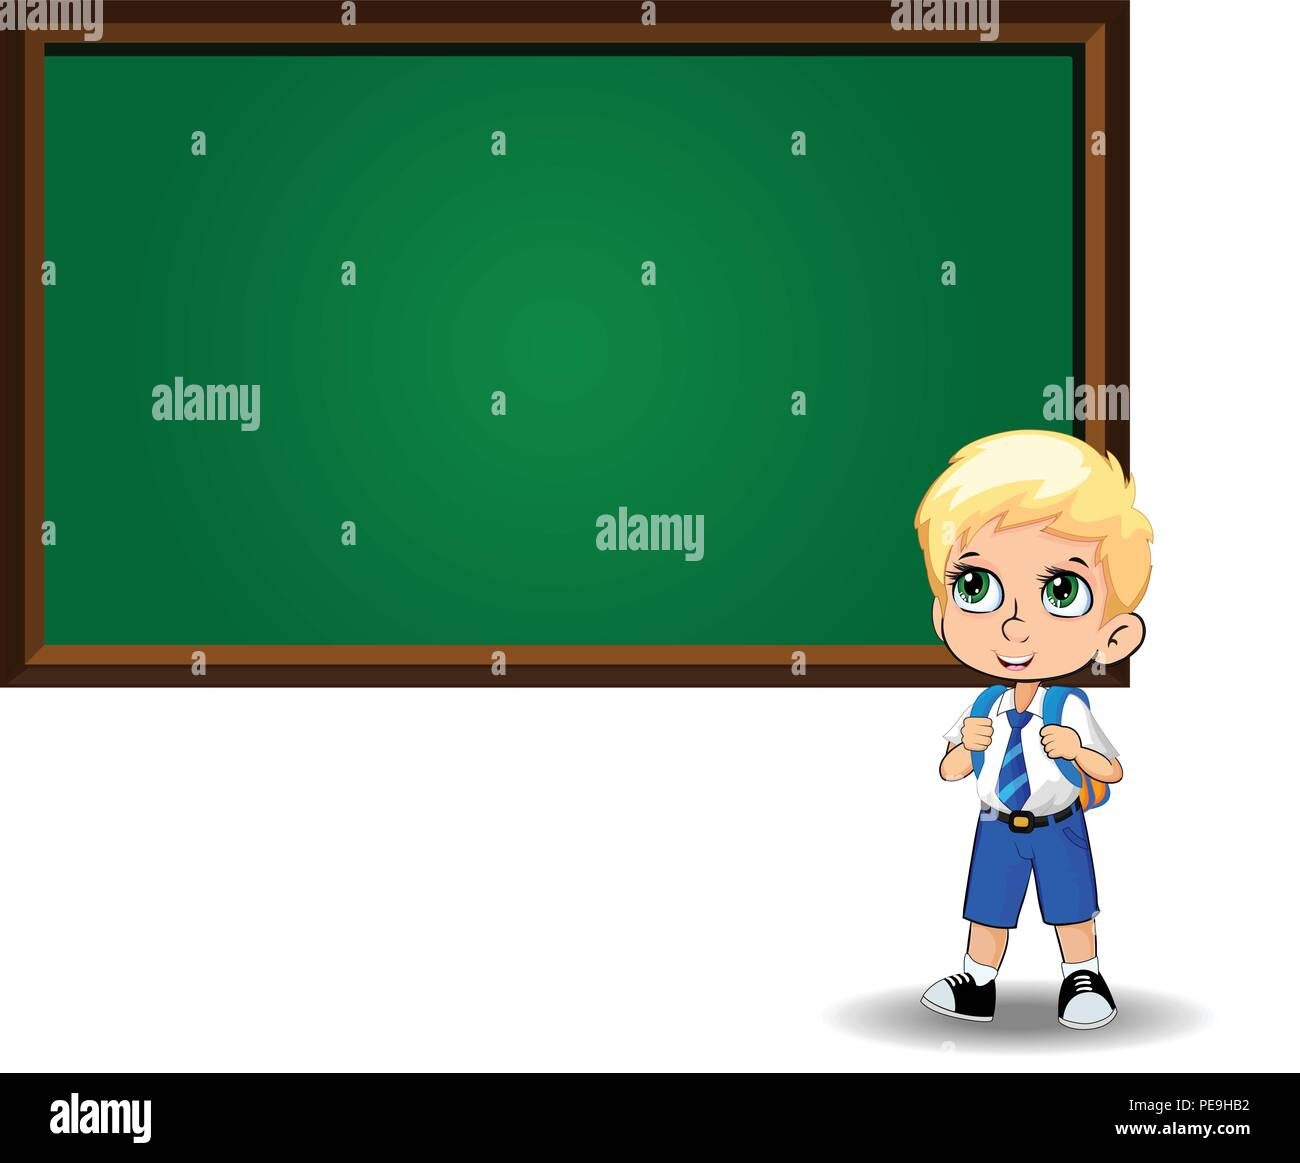 Cute Little Blonde School Boy With Big Green Eyes Wearing Uniform